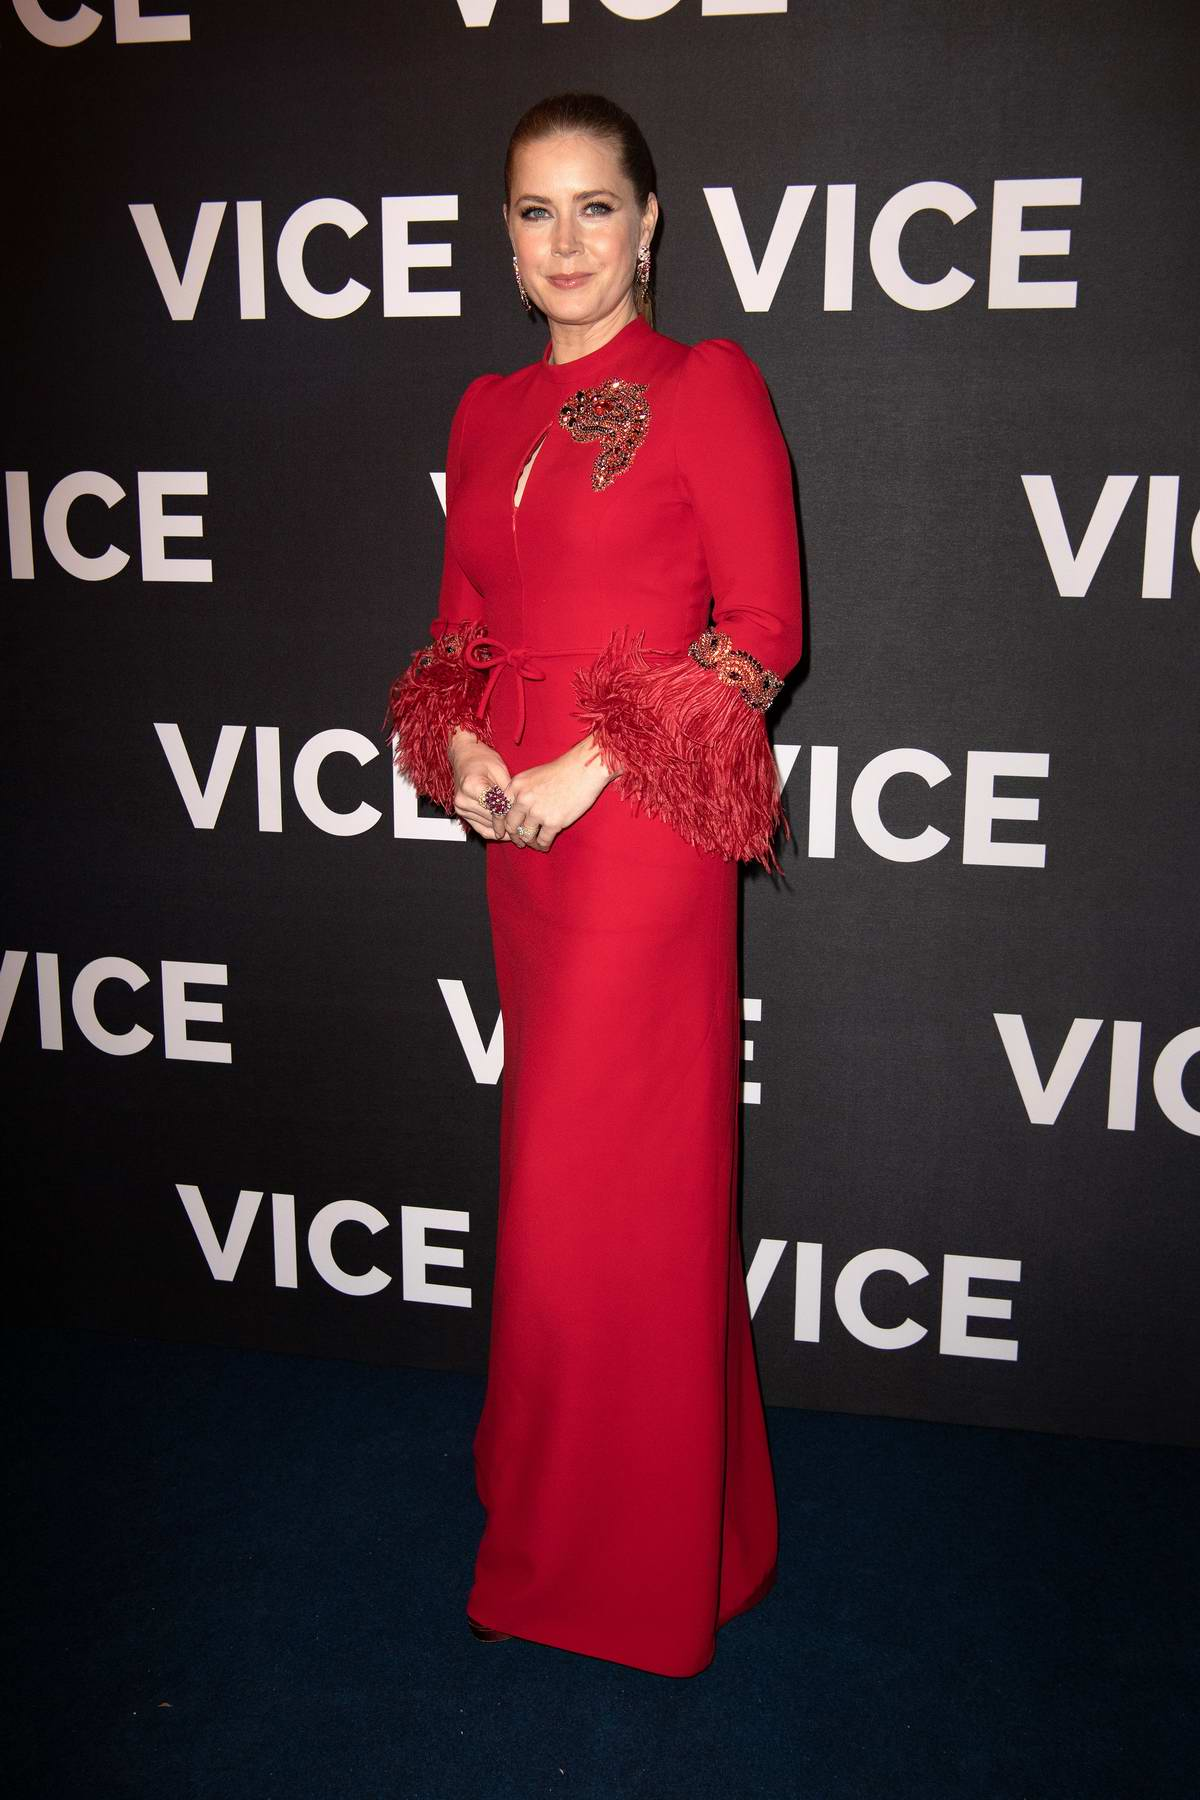 Amy Adams attends the Premiere of 'Vice' in Paris, France